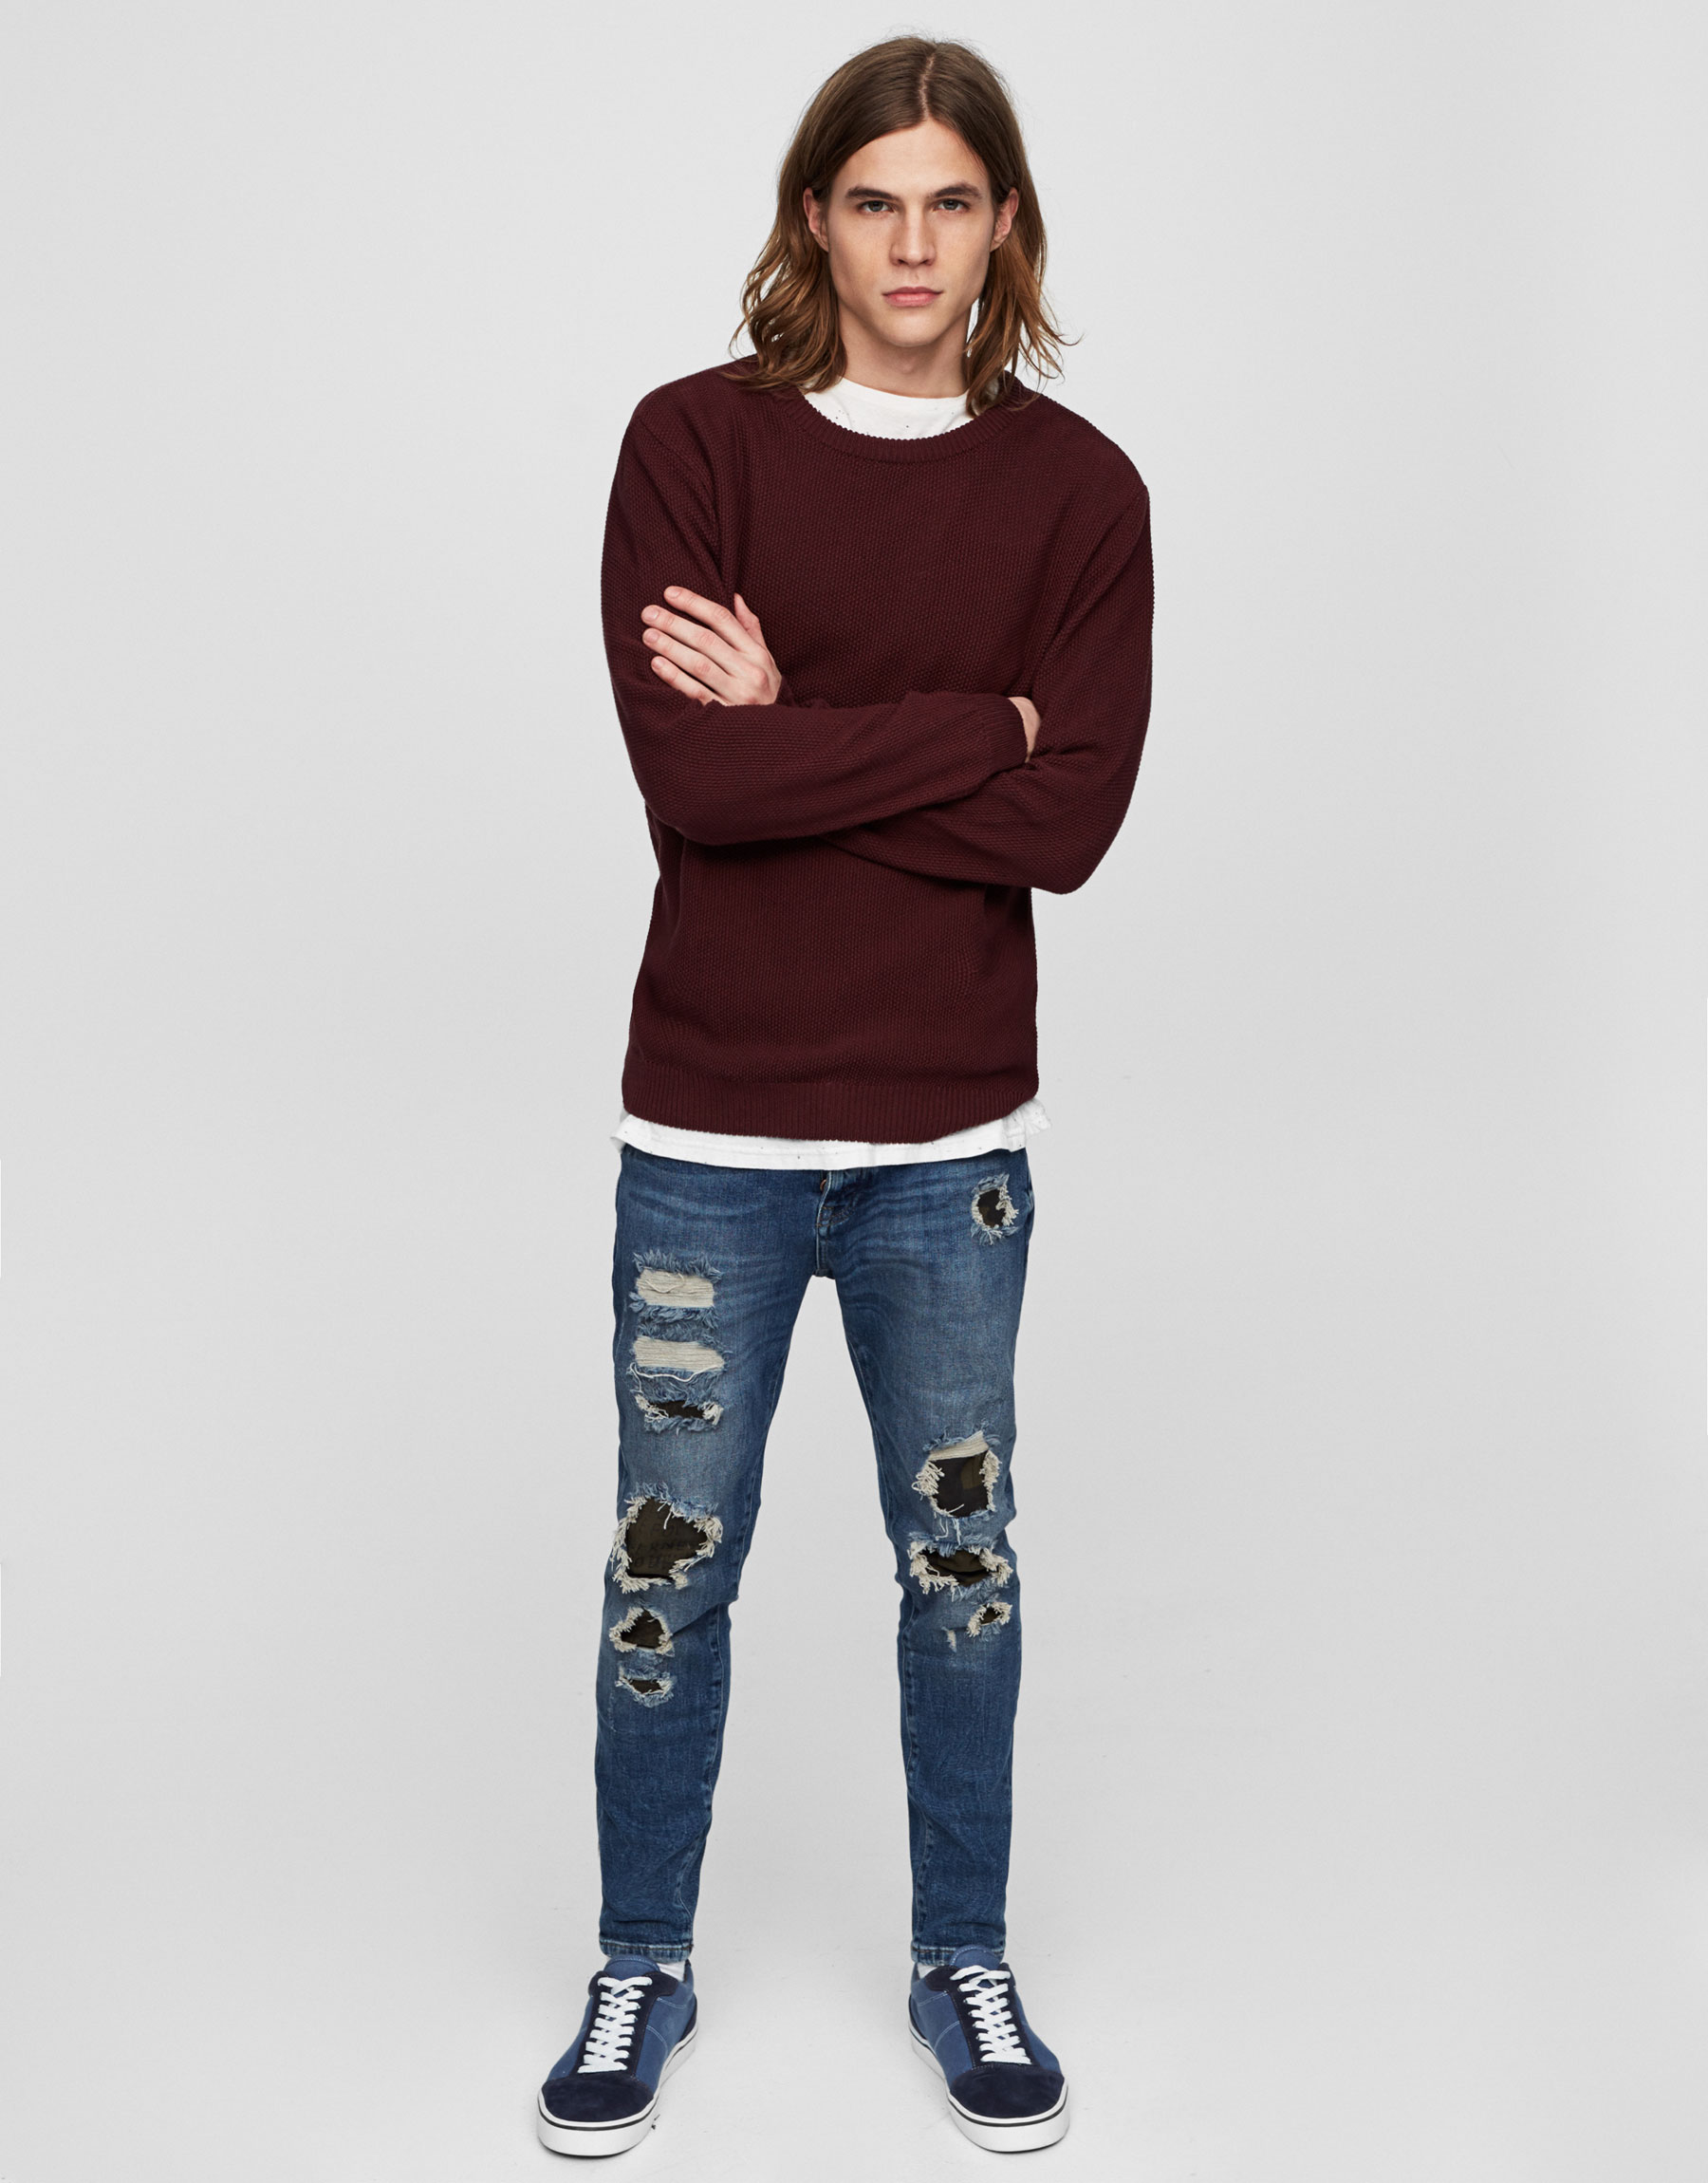 Jeans carrot fit rotos camuflaje